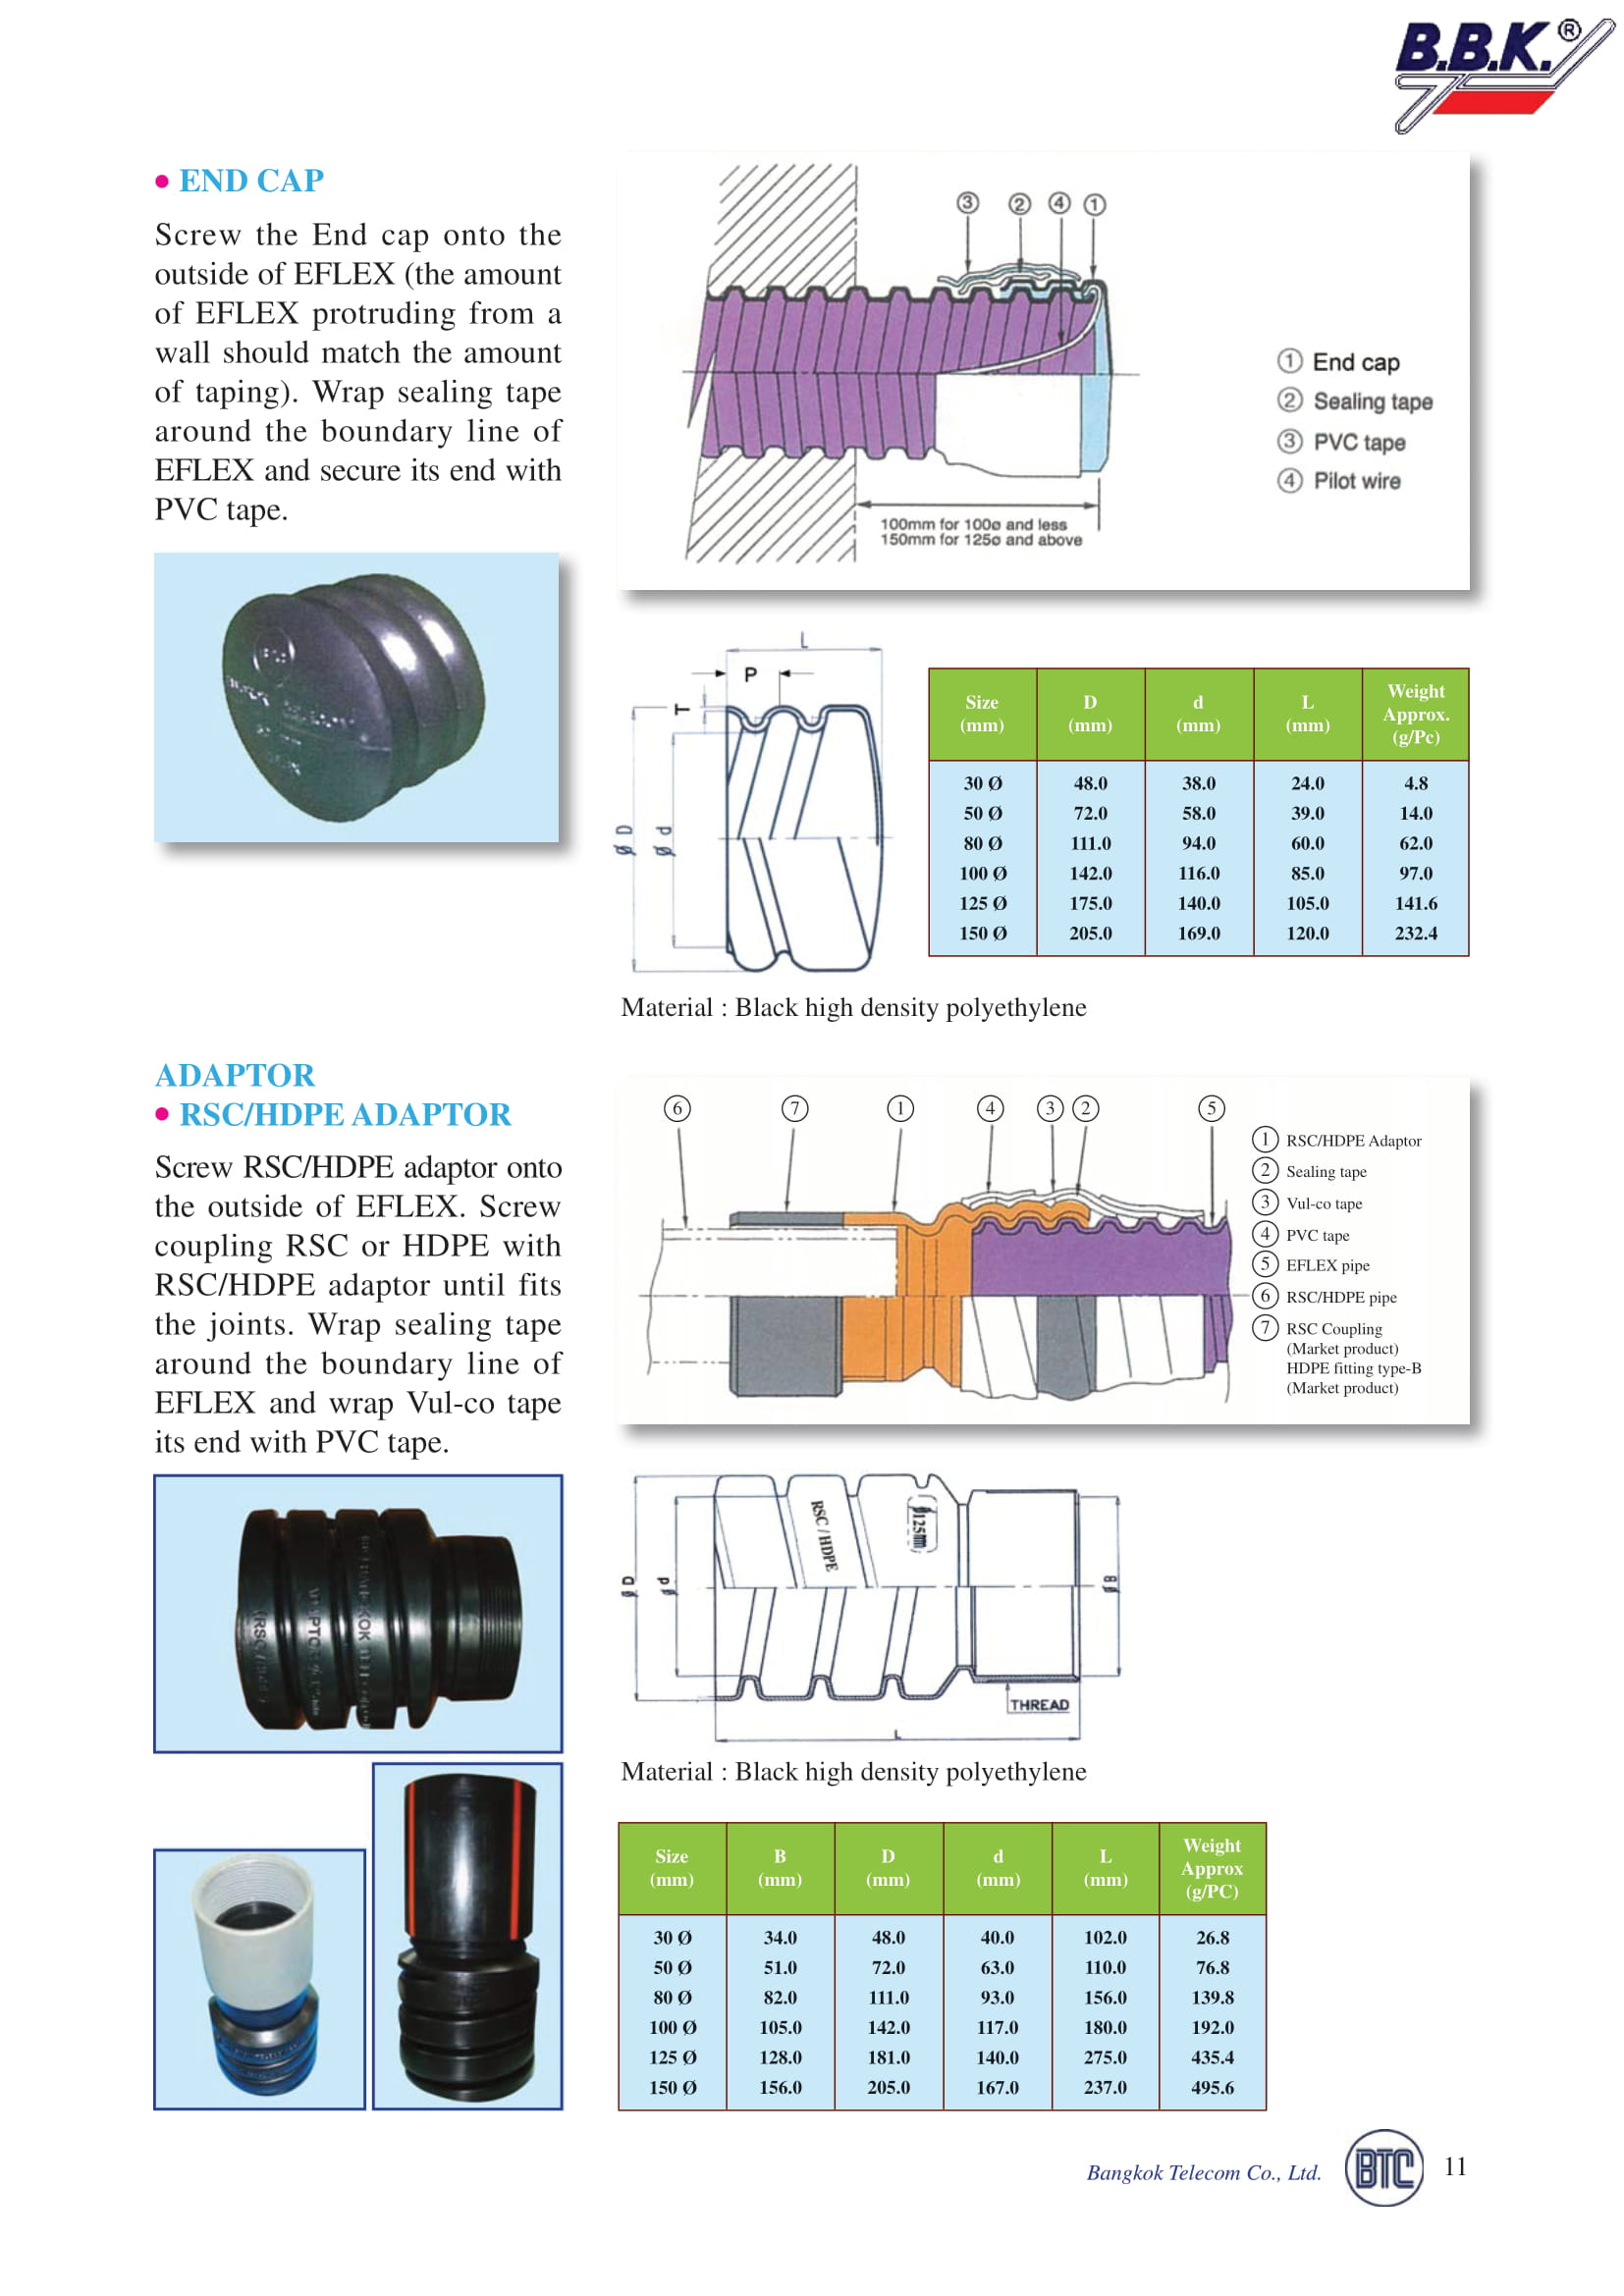 Arrow Conduits,air duct,cable ladder, cable tray, cable trunking, electrical conduit fitting, eflex conduit, hdpe conduit, ppr pipe, pvc conduit,panel box,rtrc underfroundpipe,underfround pipe